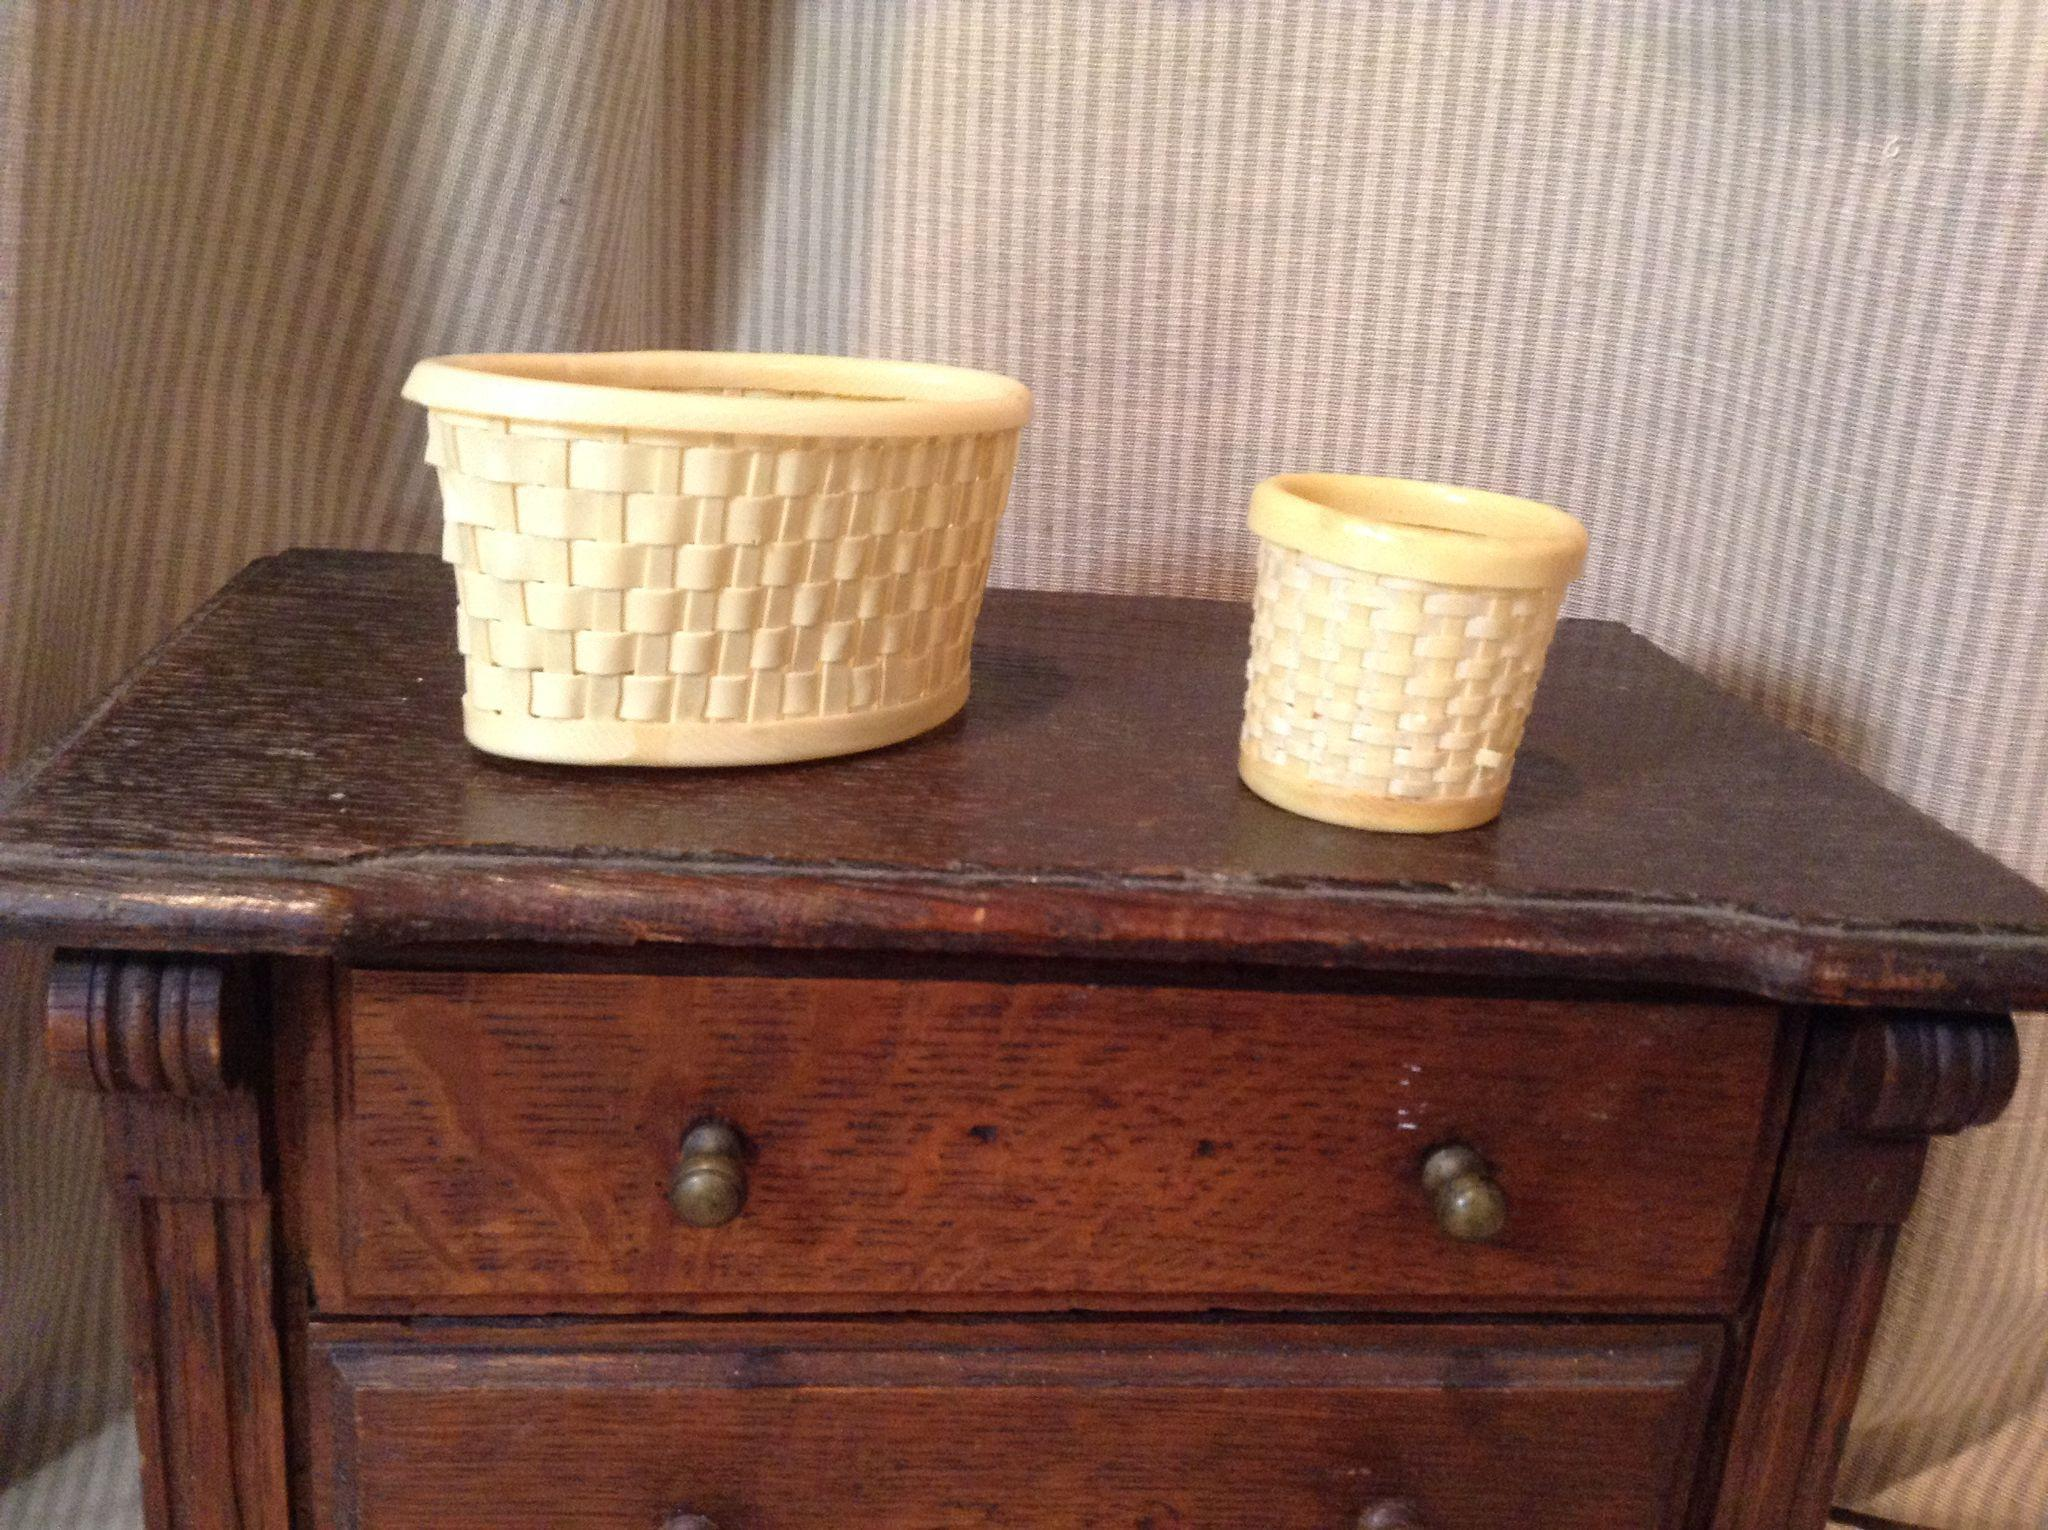 Two Celluloid Woven Miniature Baskets-Early 20.